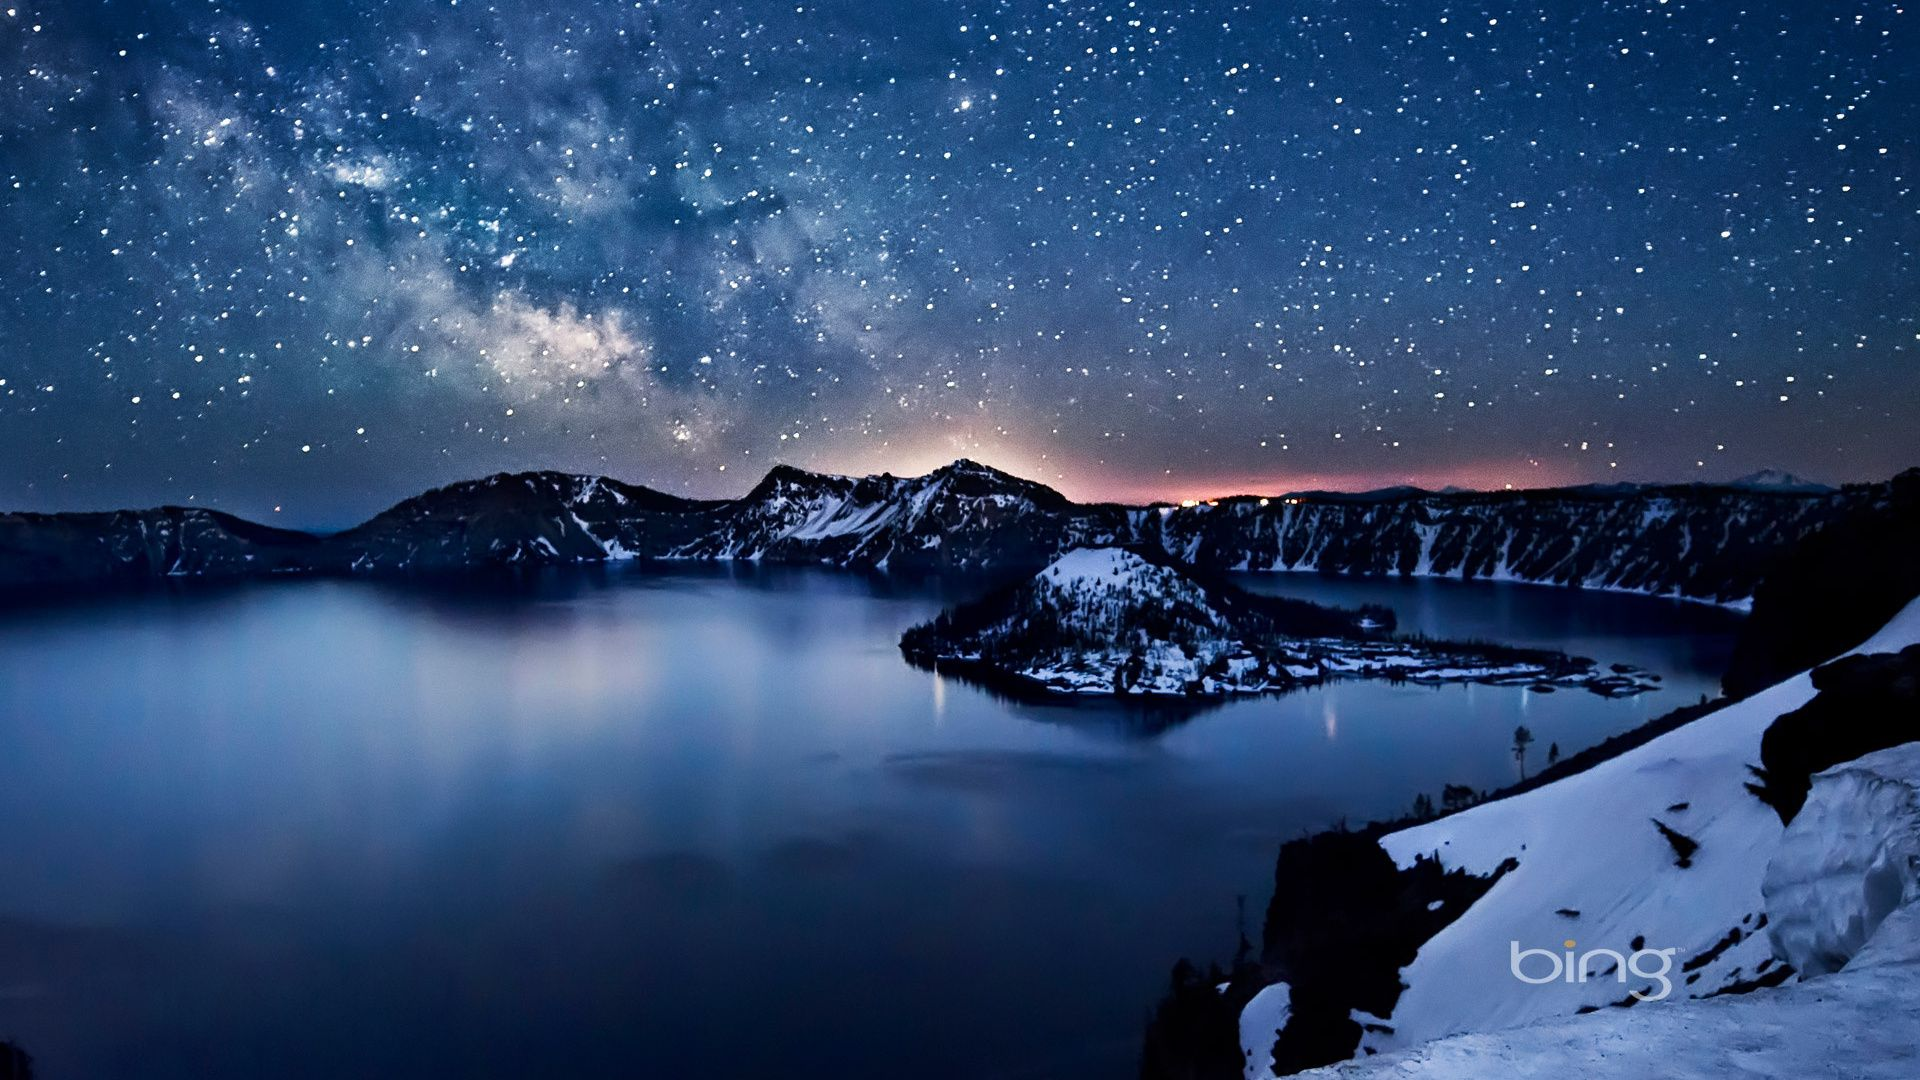 Starry Sky Wallpaper Nature photography, Crater lake